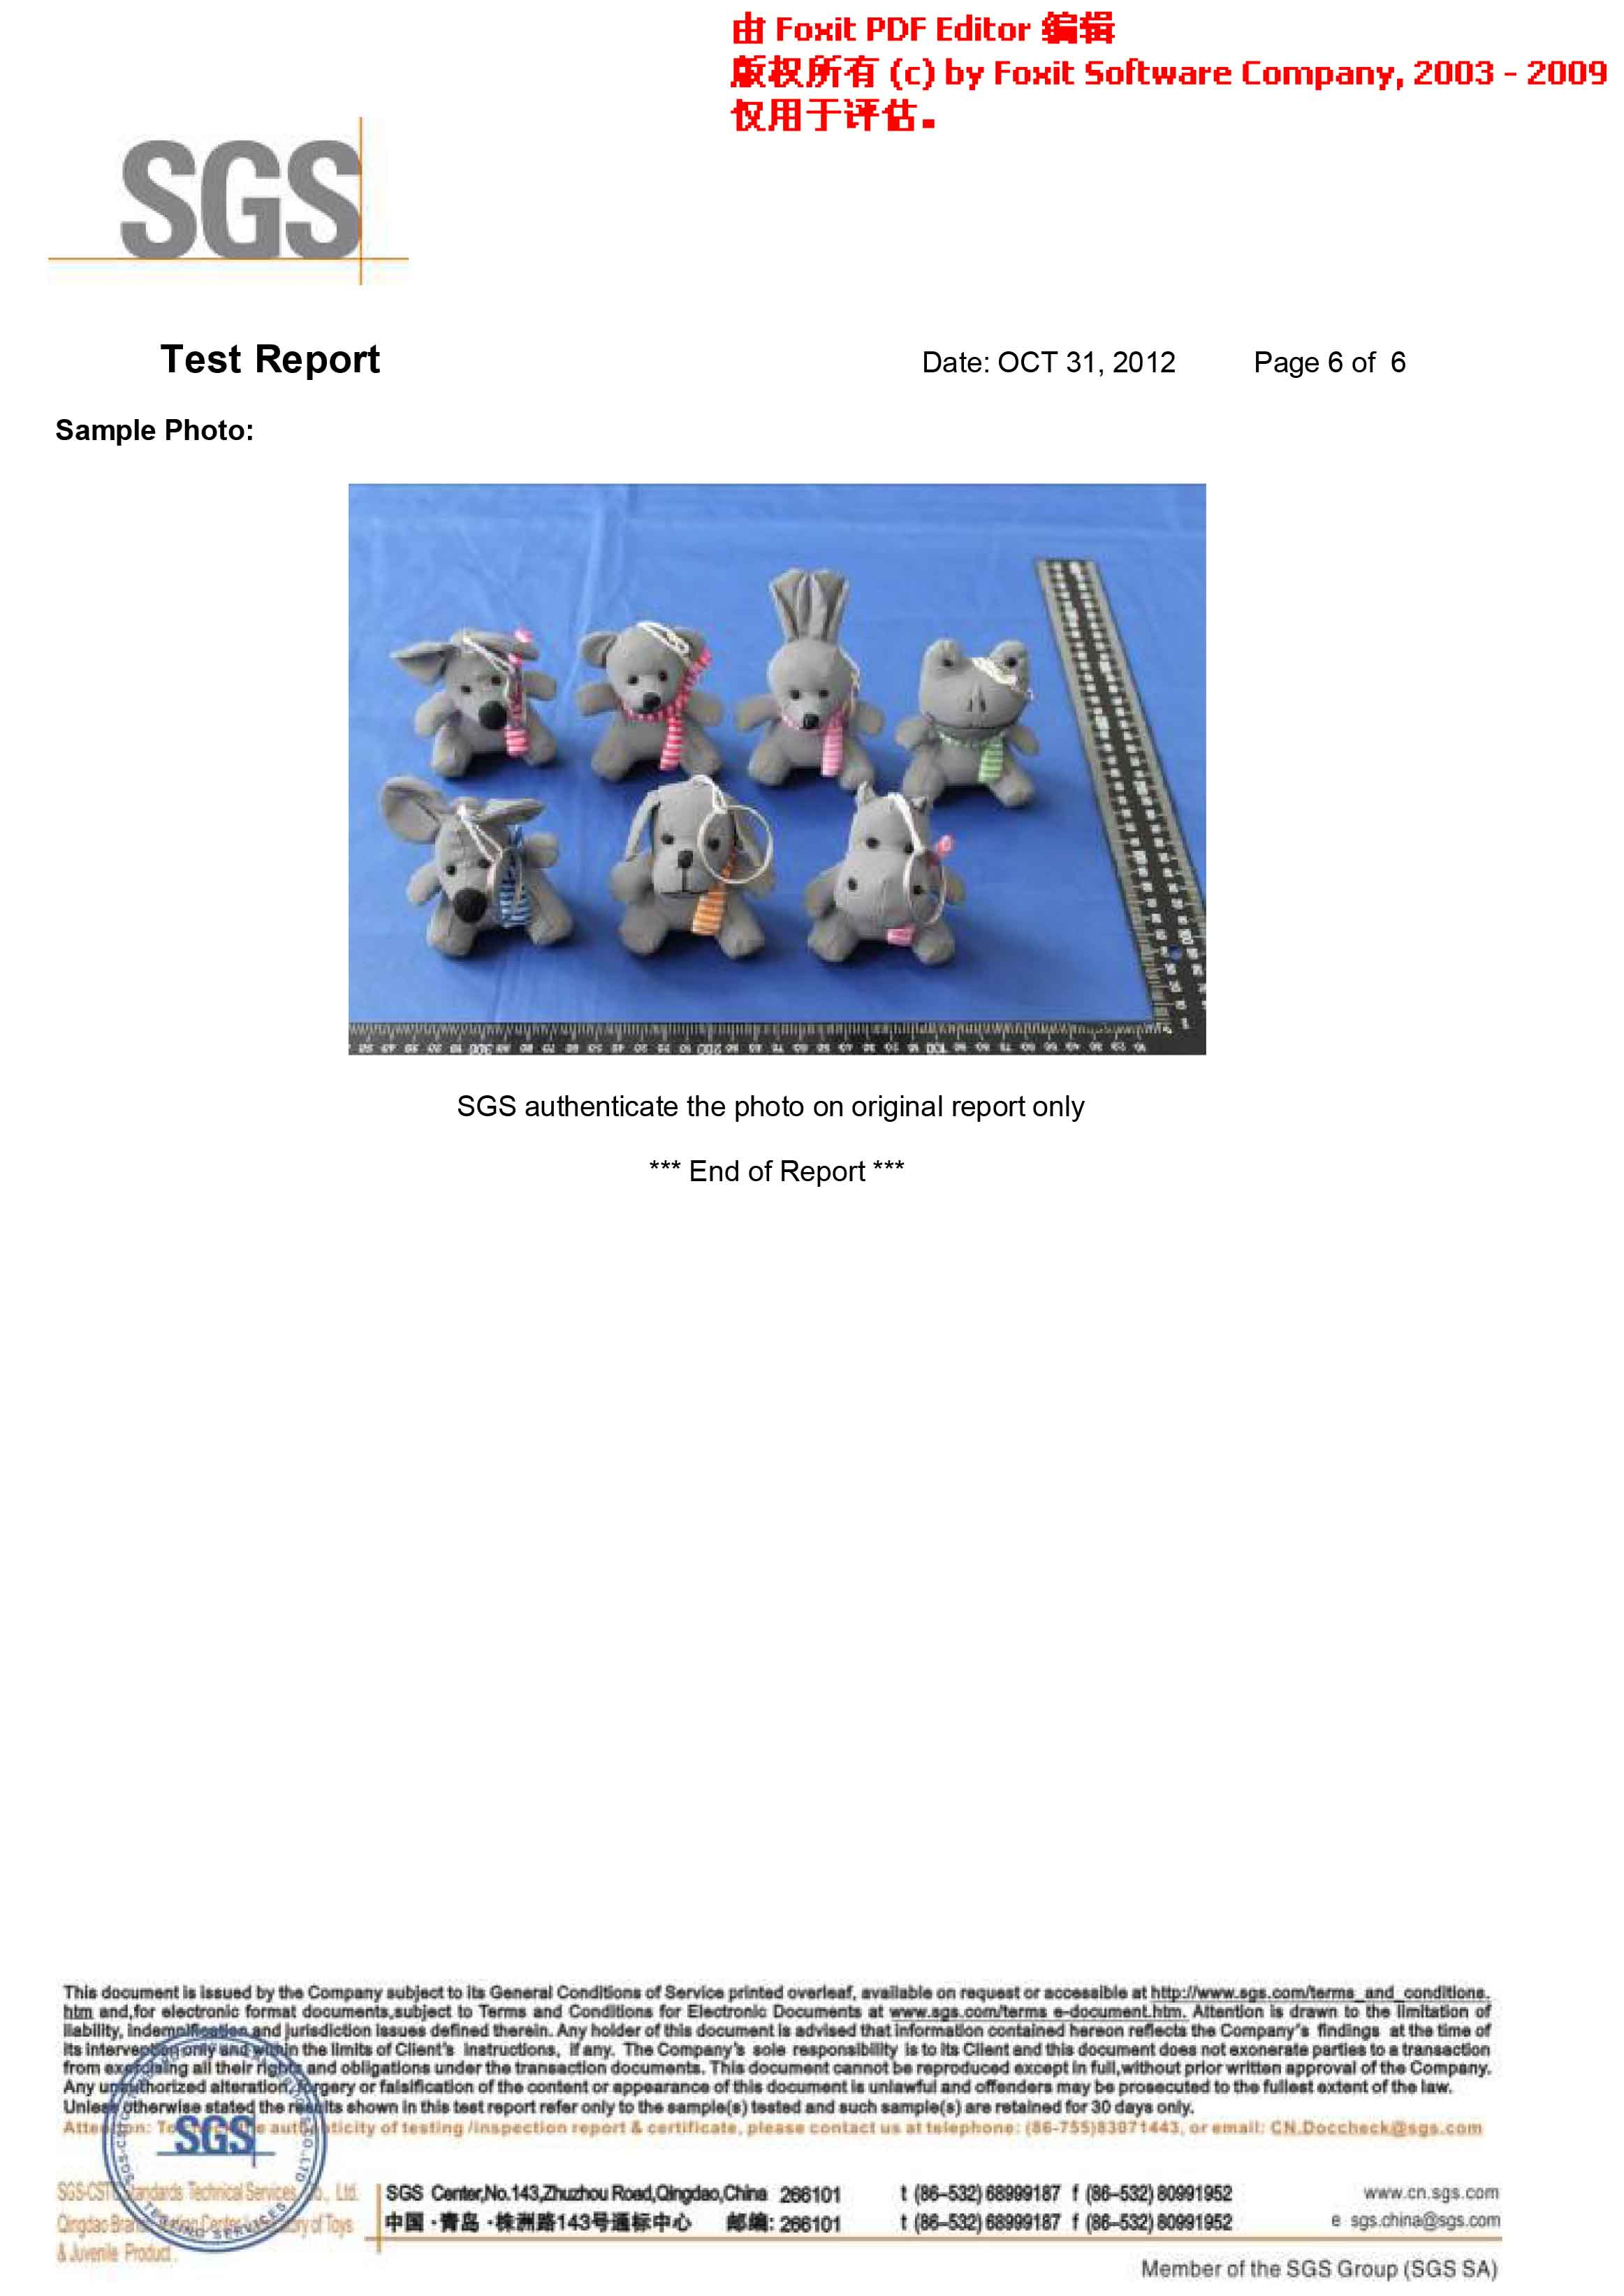 SGS report for reflective toy hanger